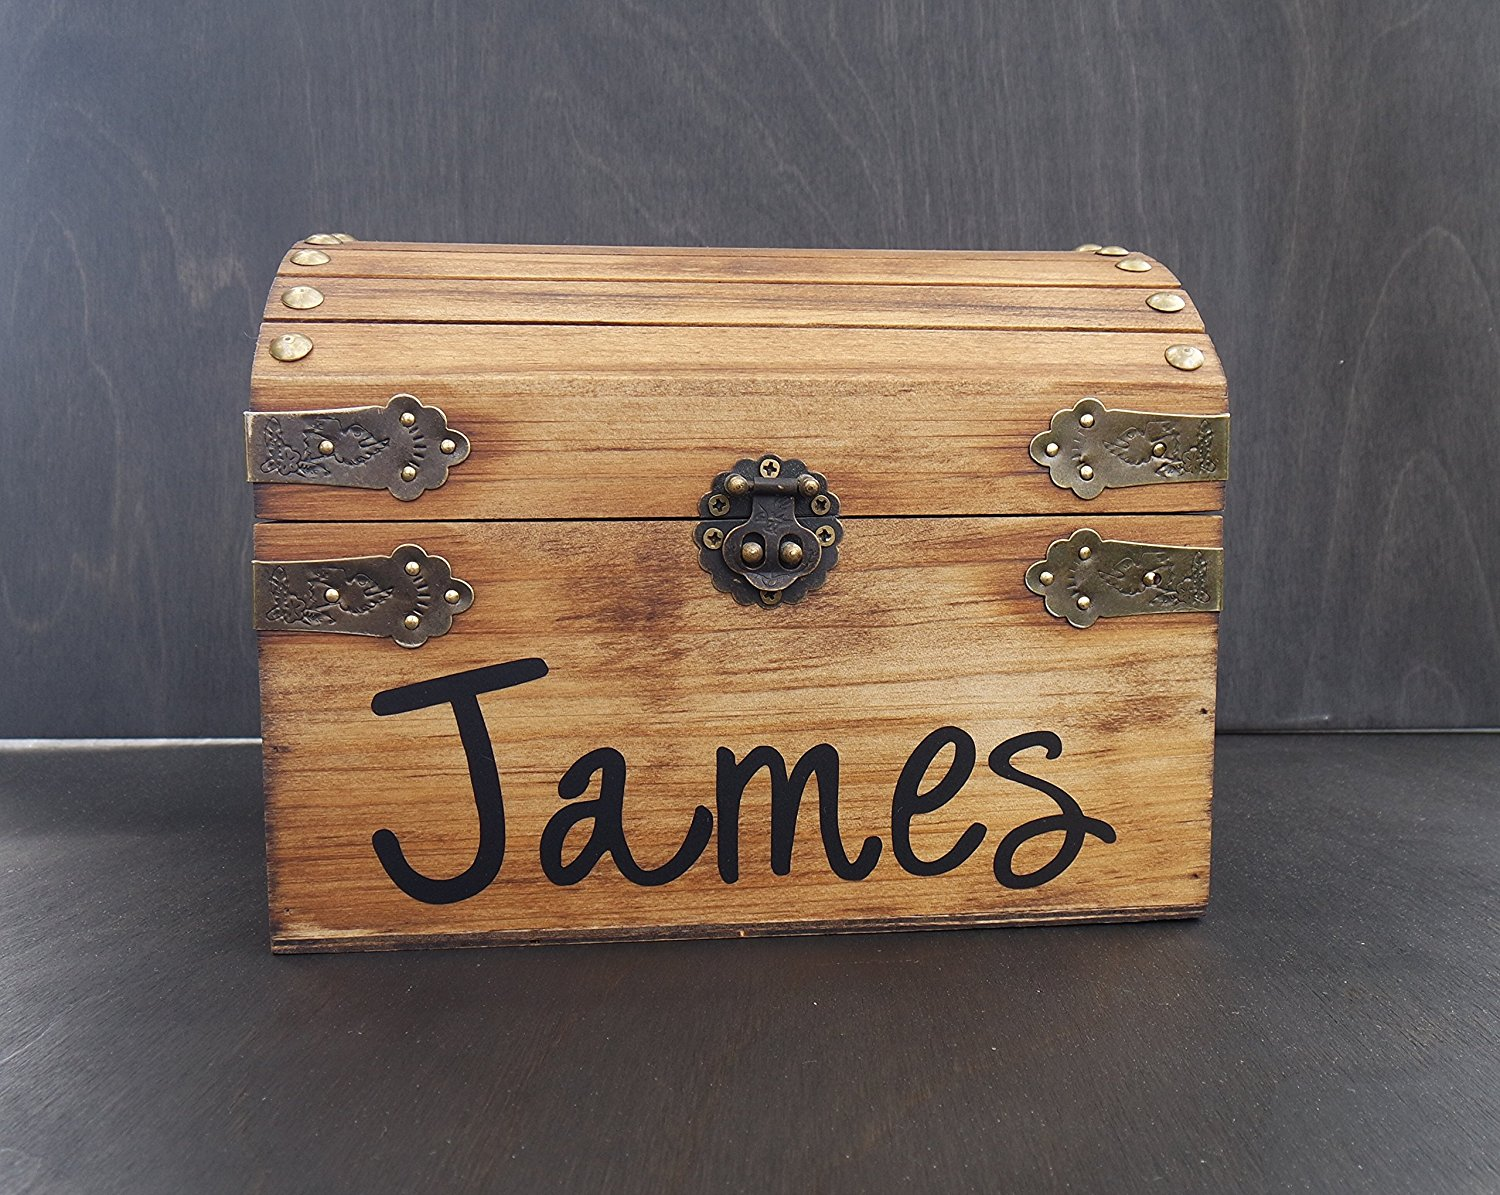 Stained Personalized Wood Chest, Child's Keepsake Chest, Child's Toy Chest, Birthday Gift, Graduation Gift, Wooden Stained Chest, Baby Gift